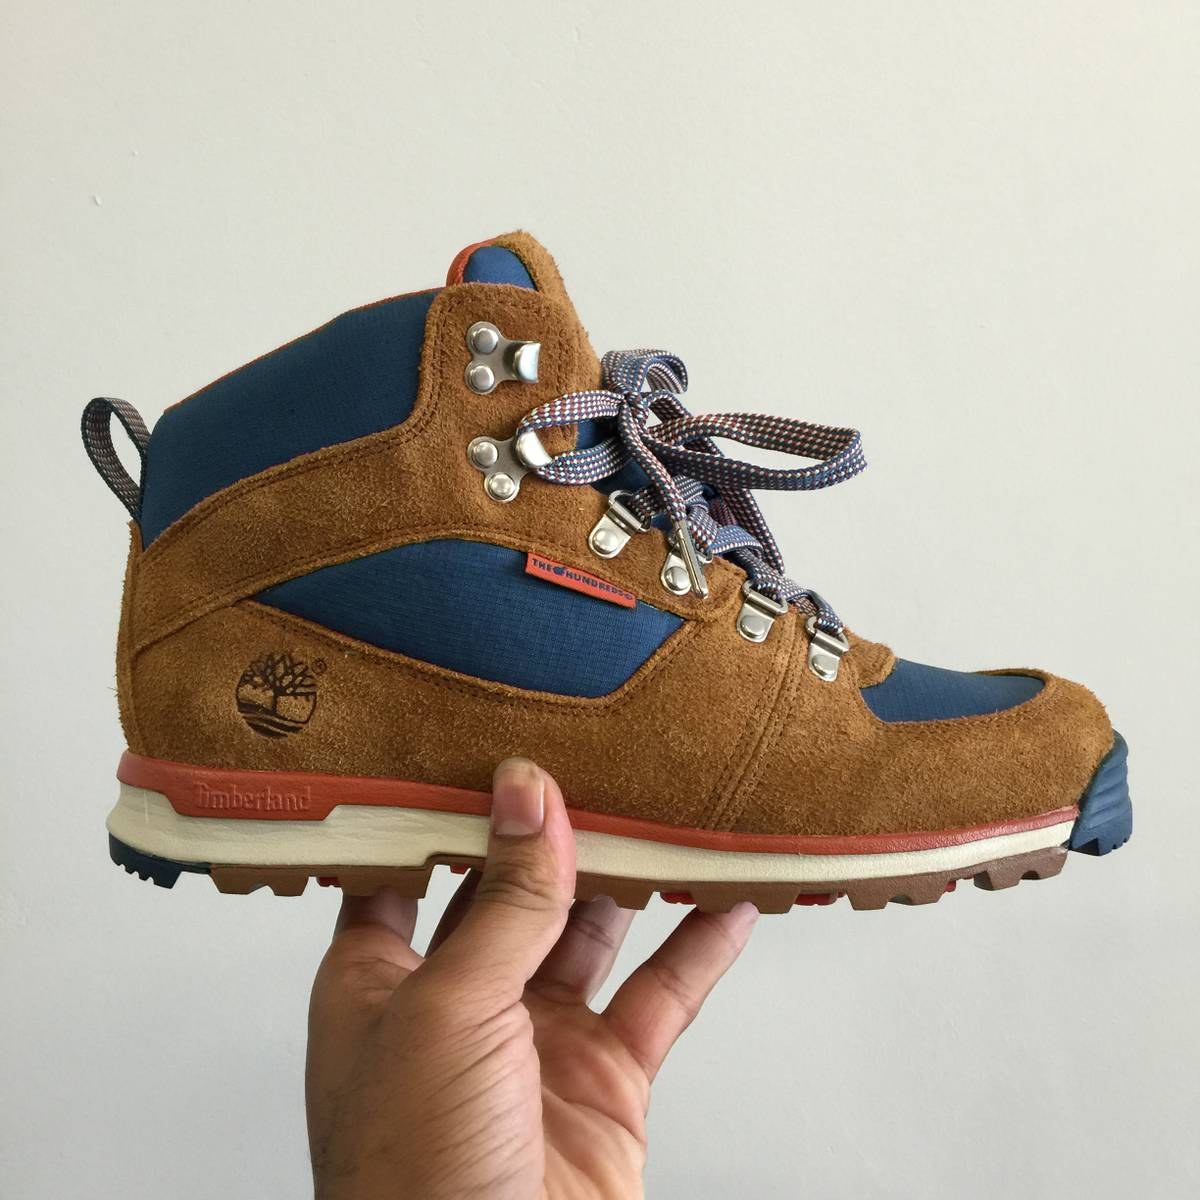 7bf194252d74 Timberland The Hundreds x Timberland GT Scramble Mid (Tan)(Full size run  available) Size 8 - Boots for Sale - Grailed